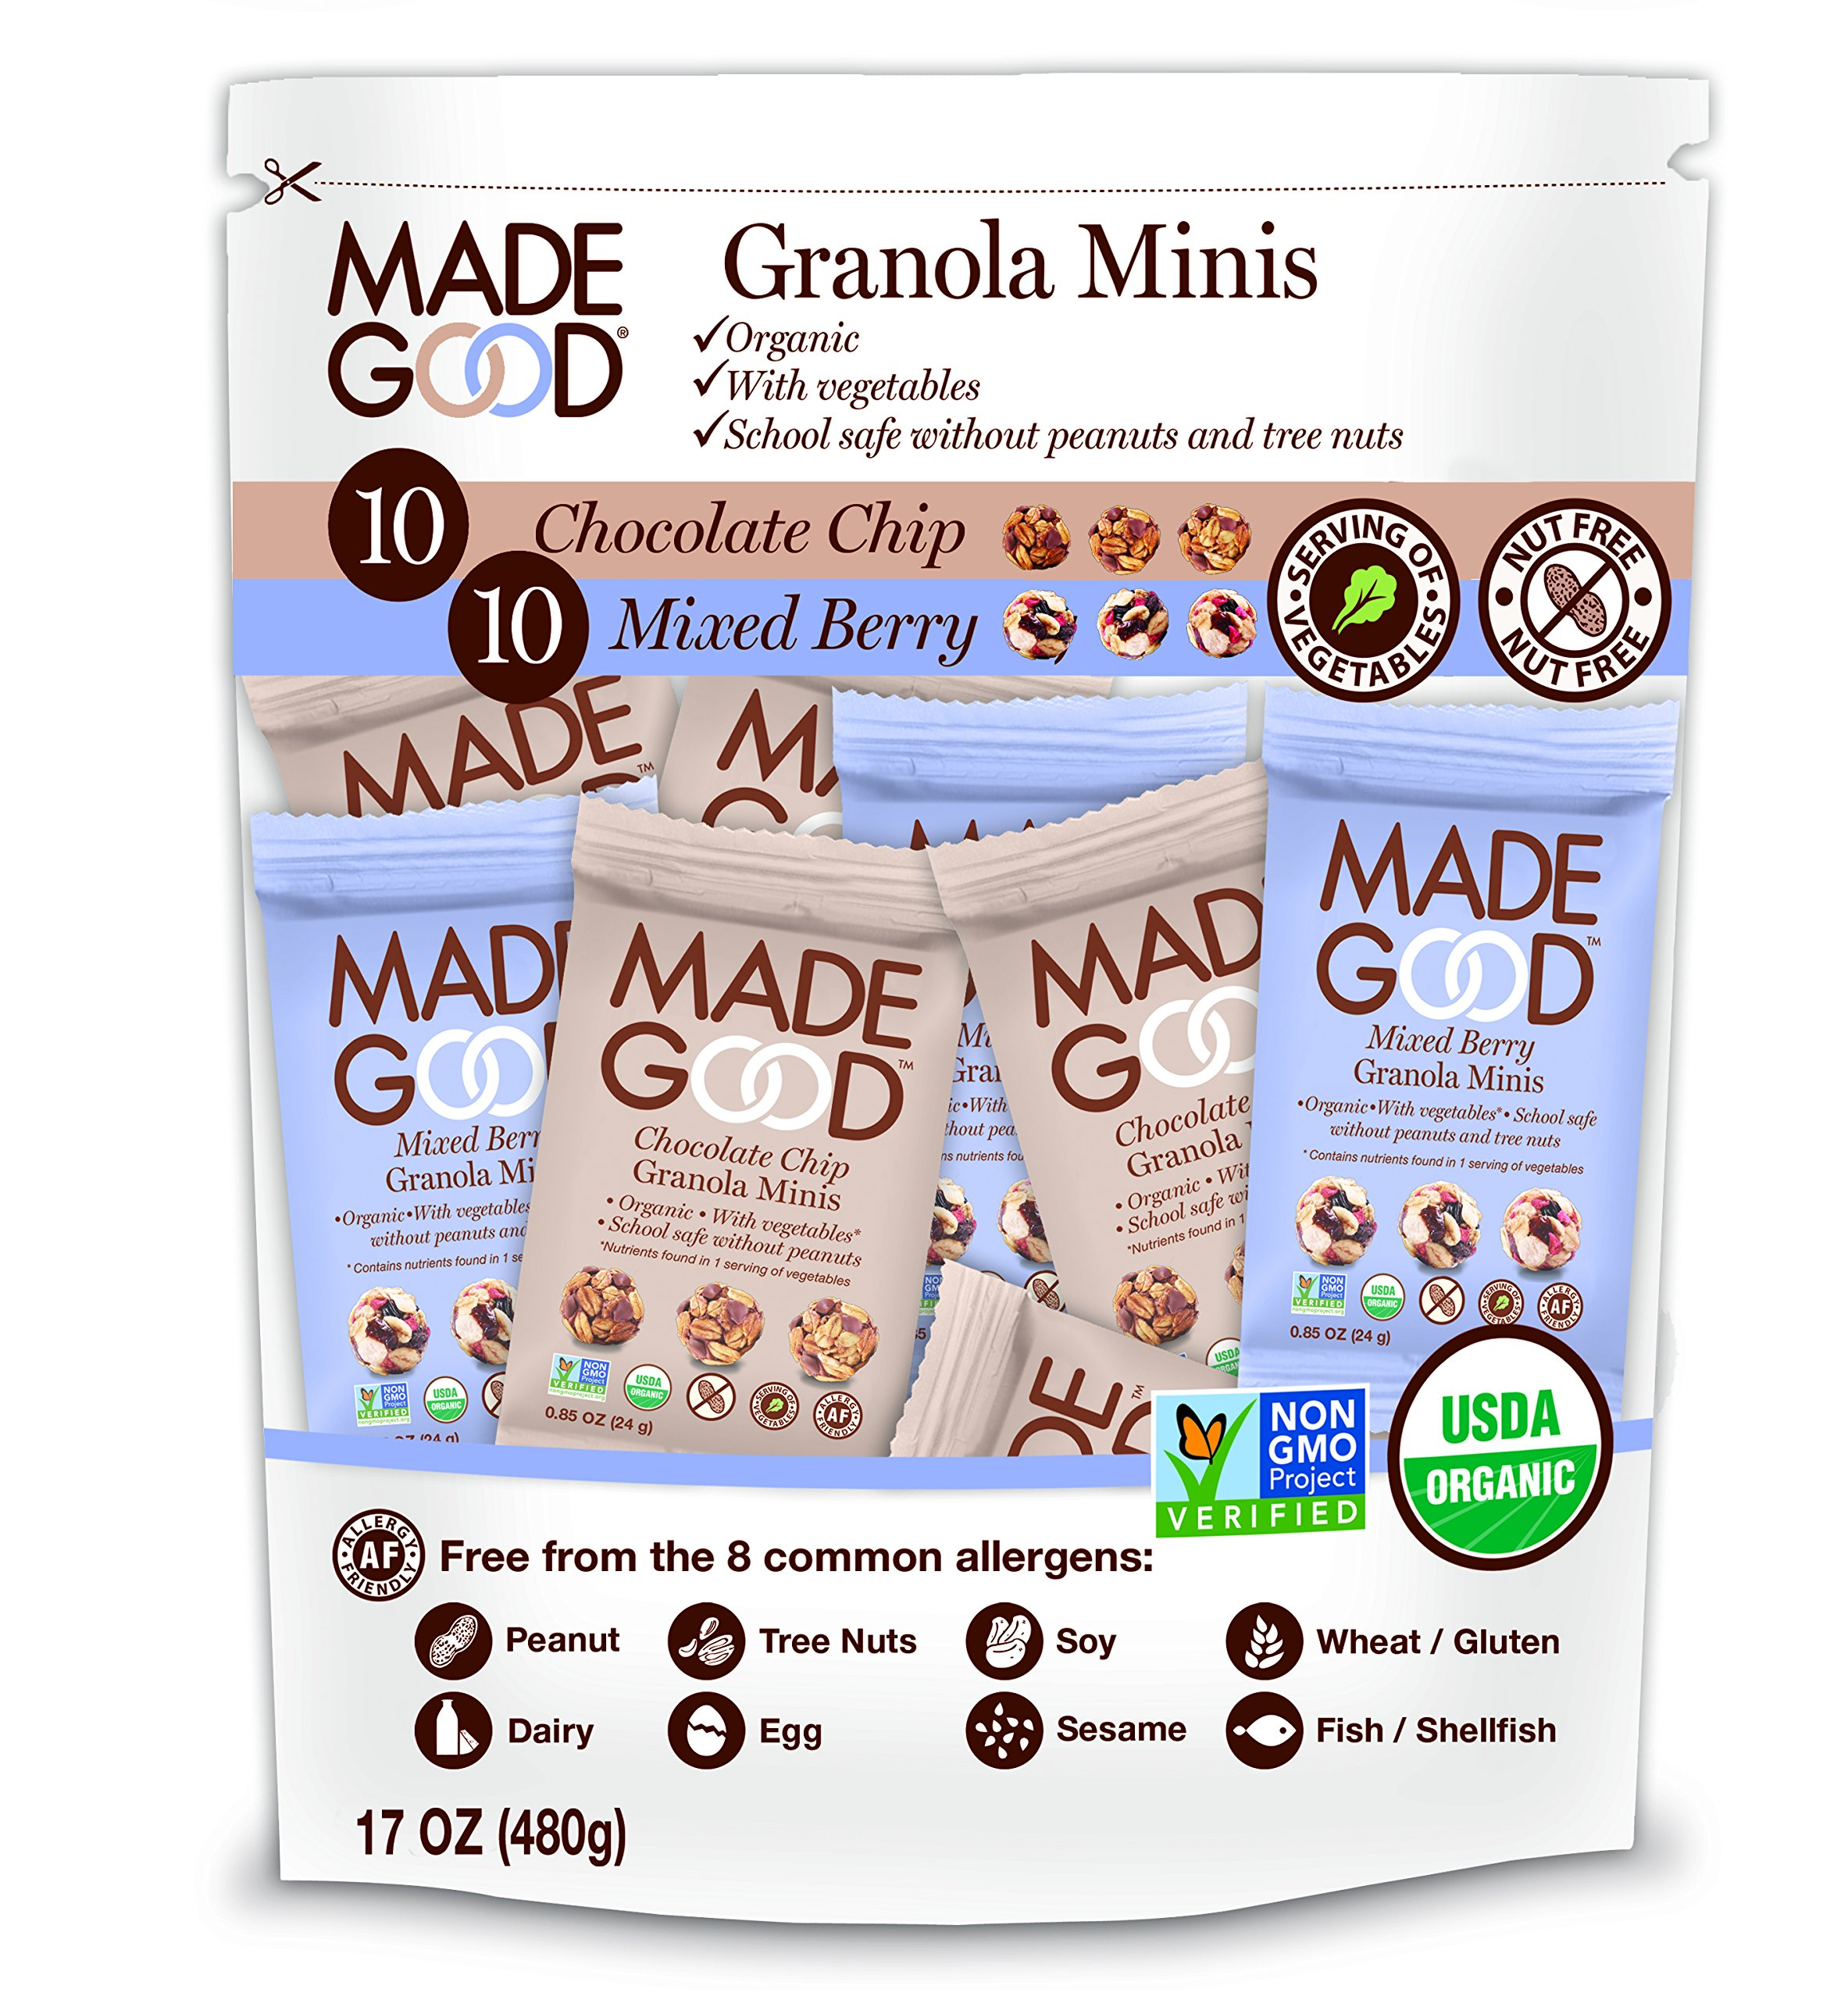 Made Good Minis- Mixed Flavors Pack of 20 - 10 Chocolate Chip & 10 Mixed Berry